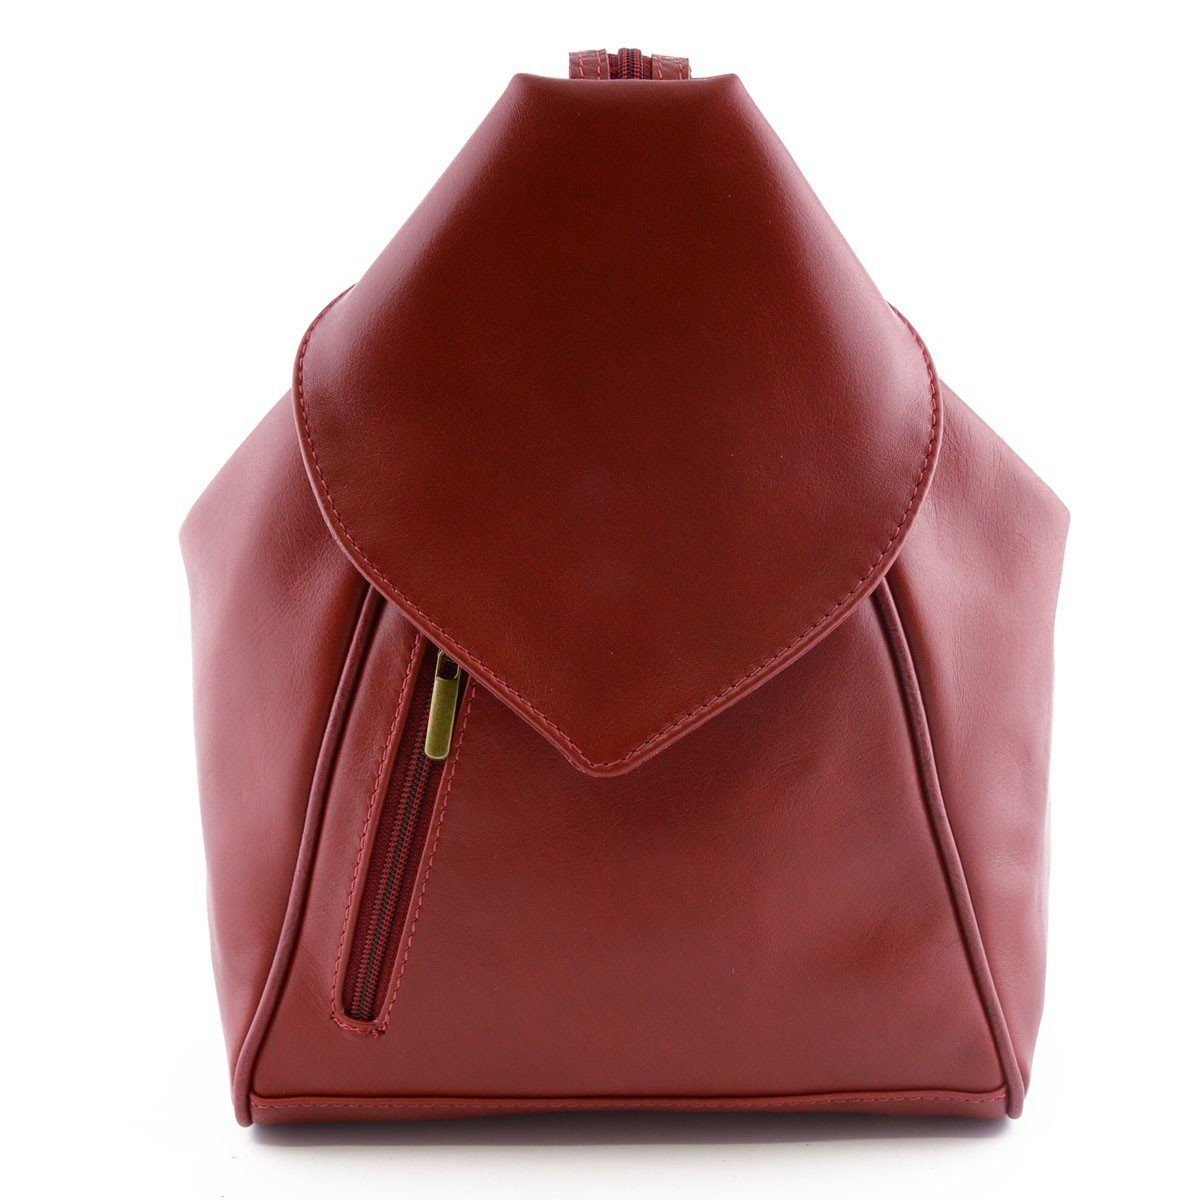 Made In Italy Woman Leather Backpack Color Red - Backpack   B015S9XVD0